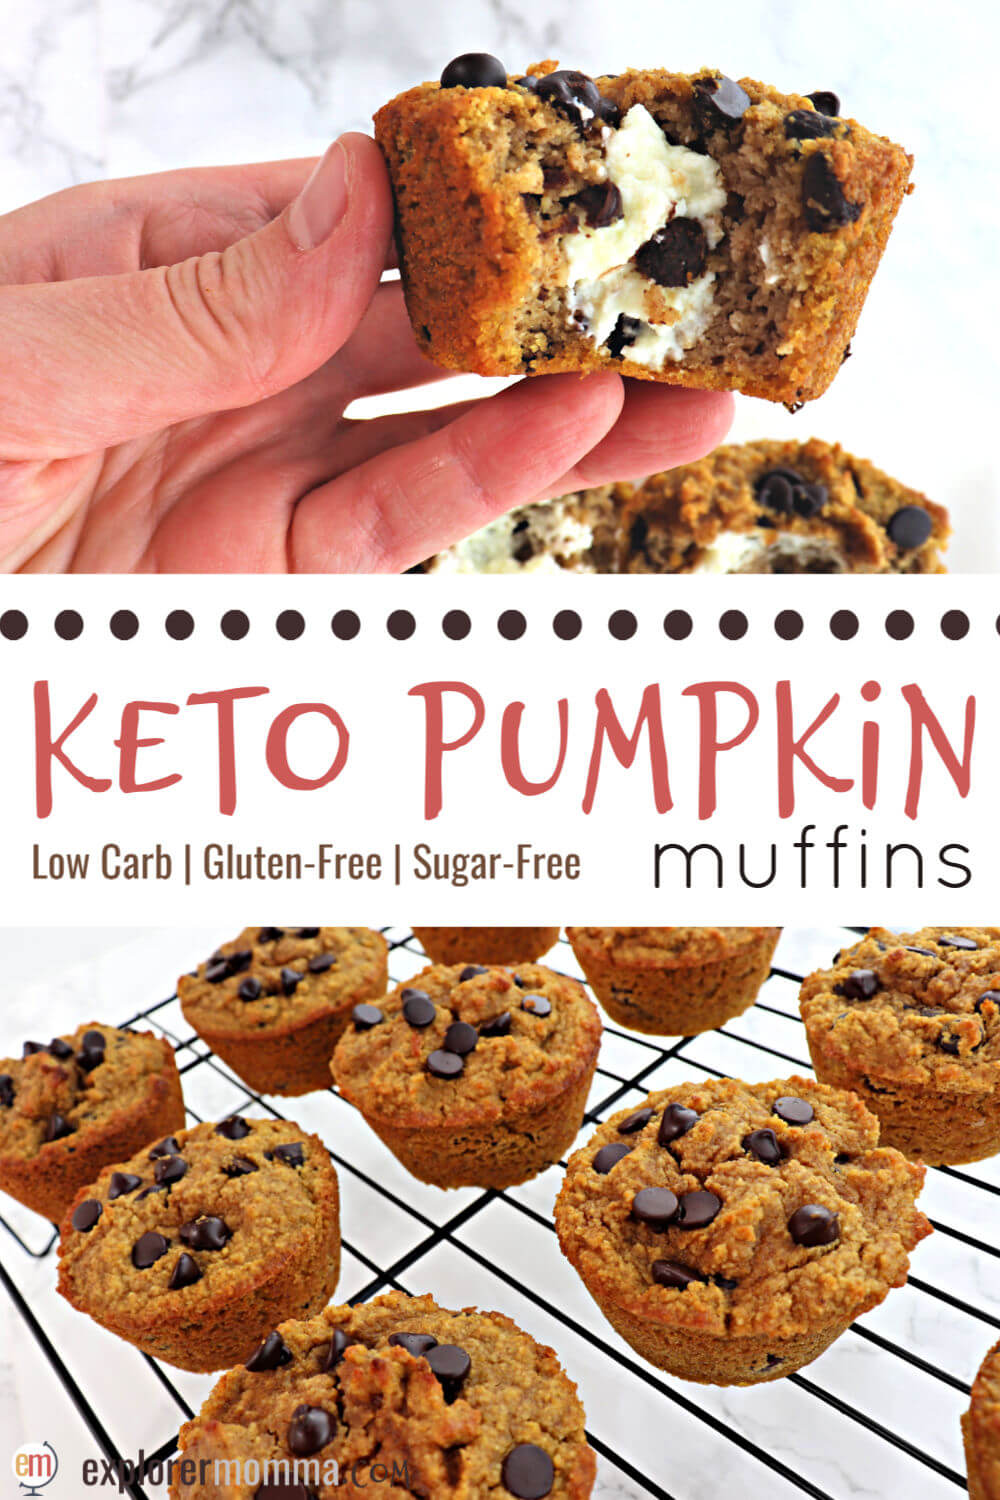 Cream cheese keto pumpkin muffins are easy and low carb delicious. Packed with pumpkin spice, sugar-free chocolate chips, and cream cheese, your taste buds, and your keto diet, will thank you. #ketodiet #ketorecipes #ketobreakfast